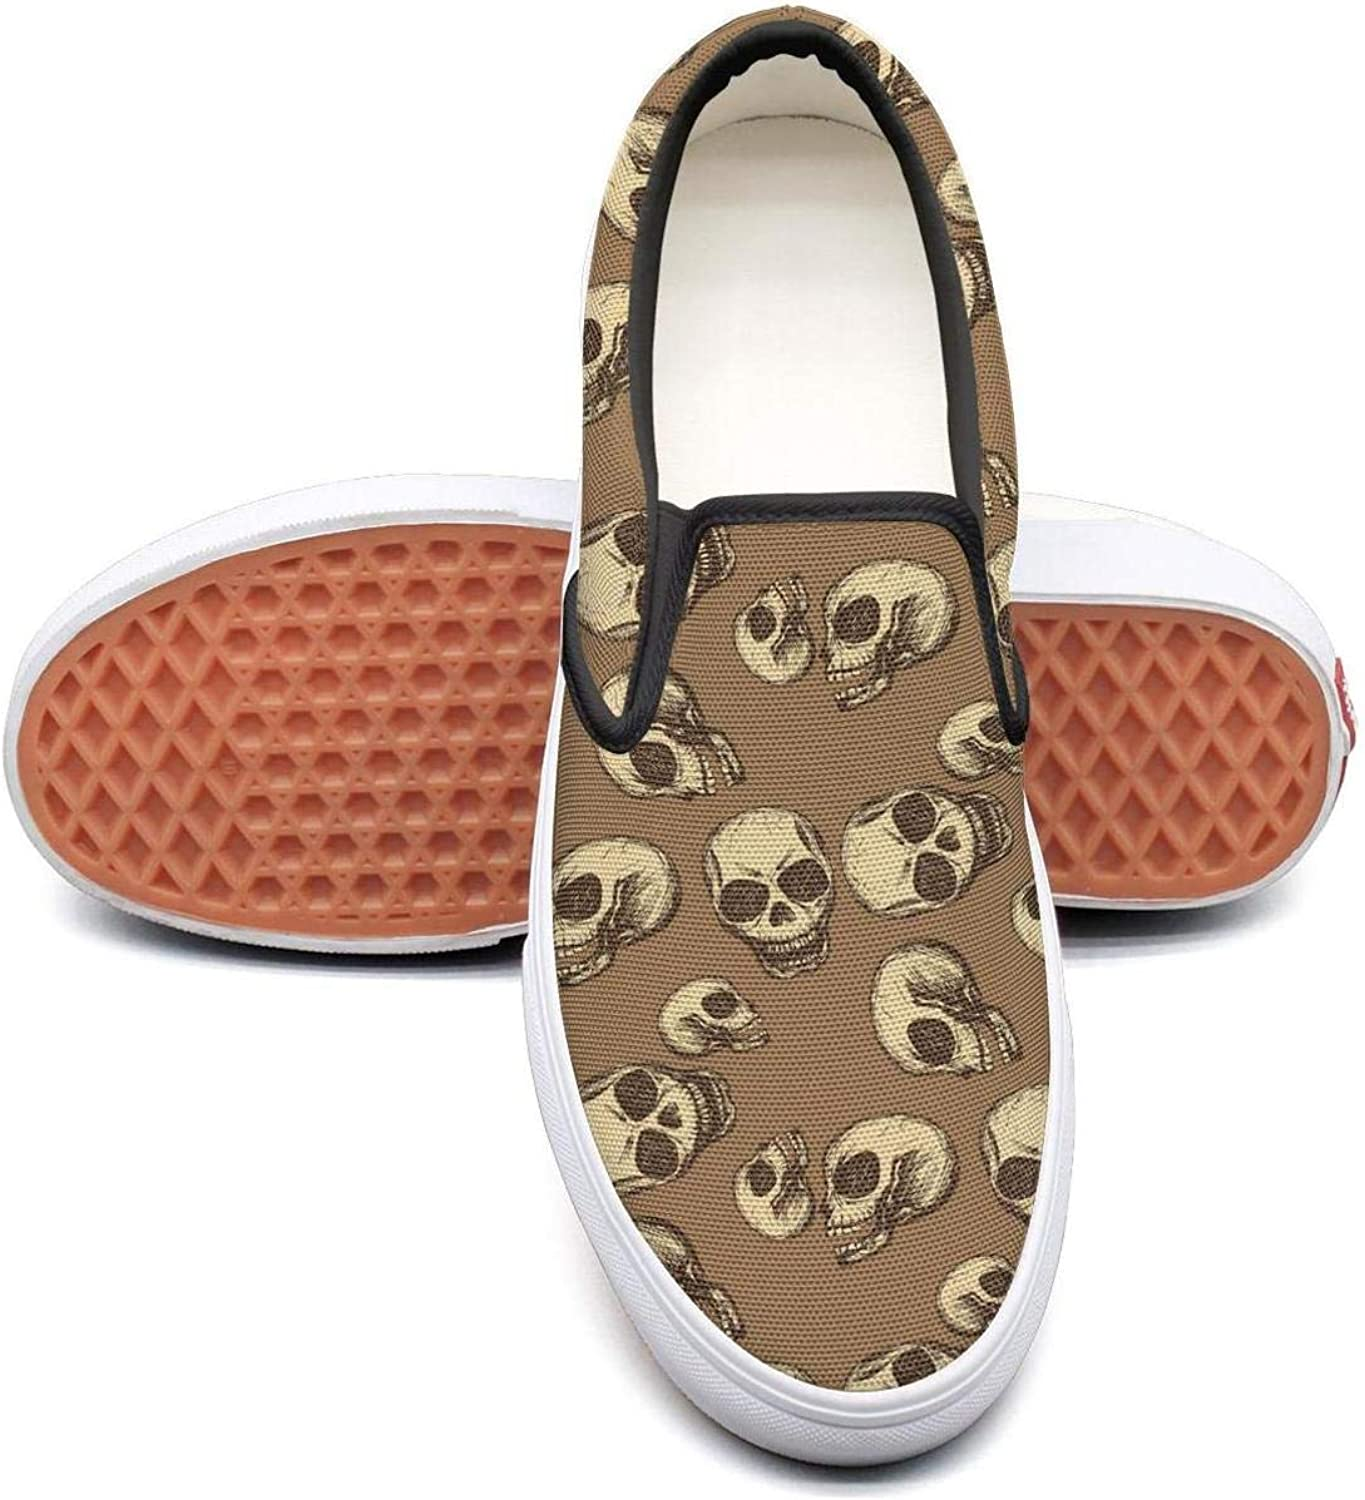 Brown Dia De Los Muertos Skull Art Poster Slip On Rubber Sole Sneakers Canvas shoes for Women Casual